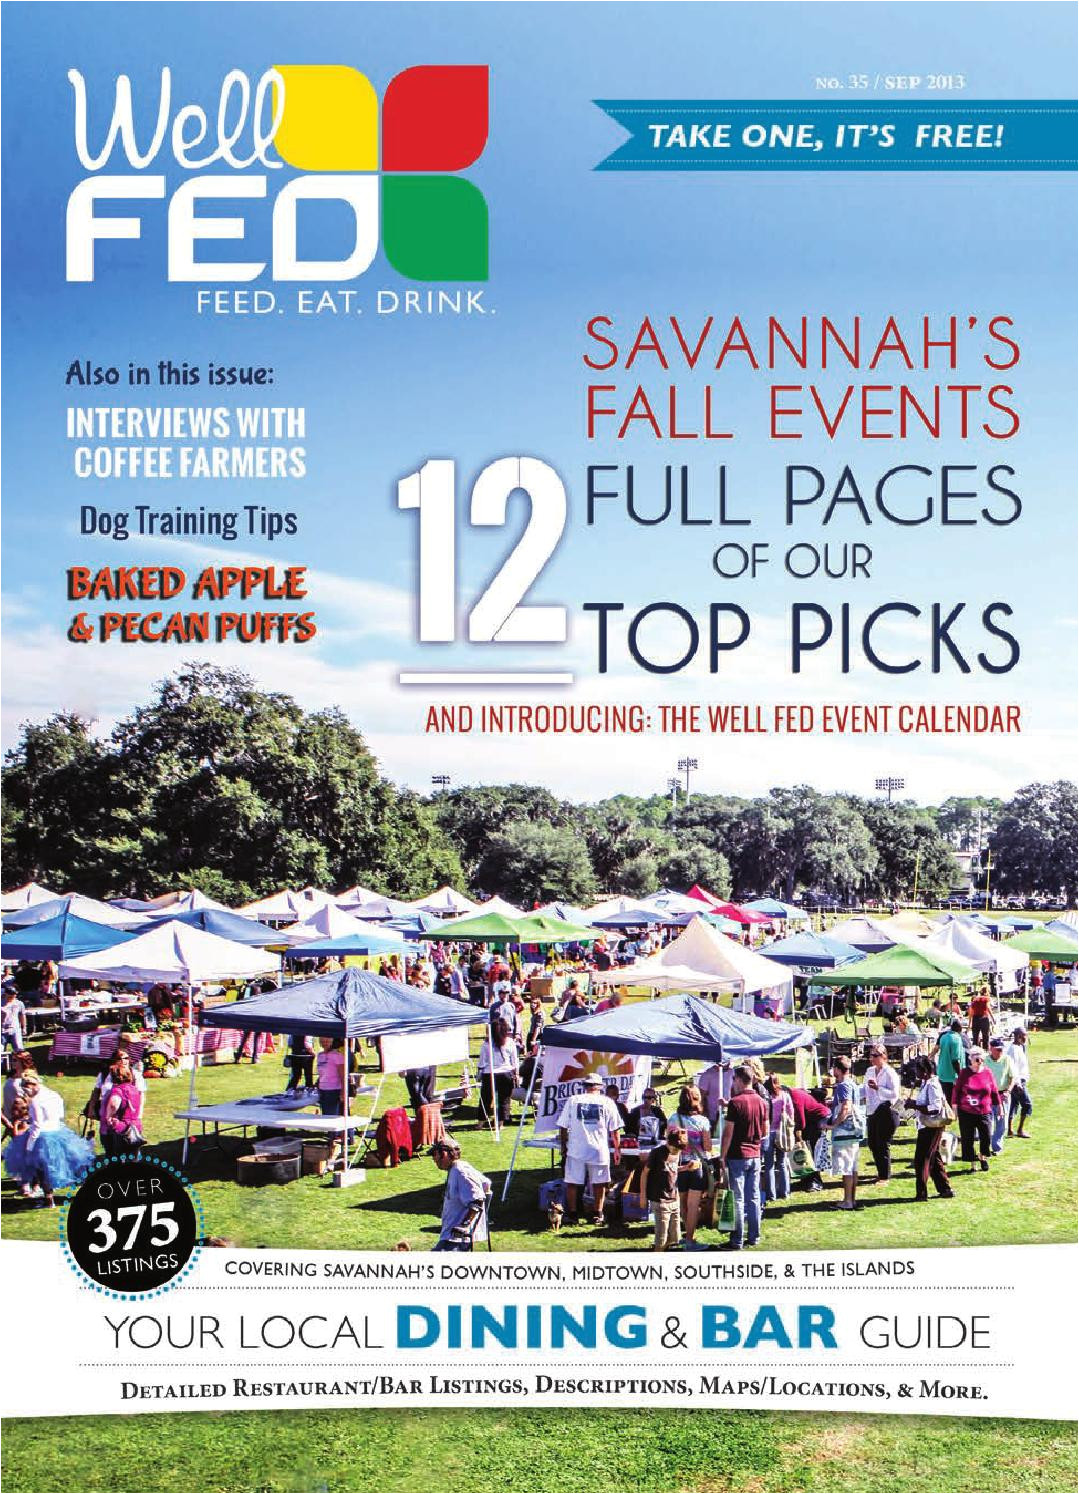 Chinese Food Delivery Savannah Ga 31401 Well Fed Savannah September 2013 by Well Fed issuu